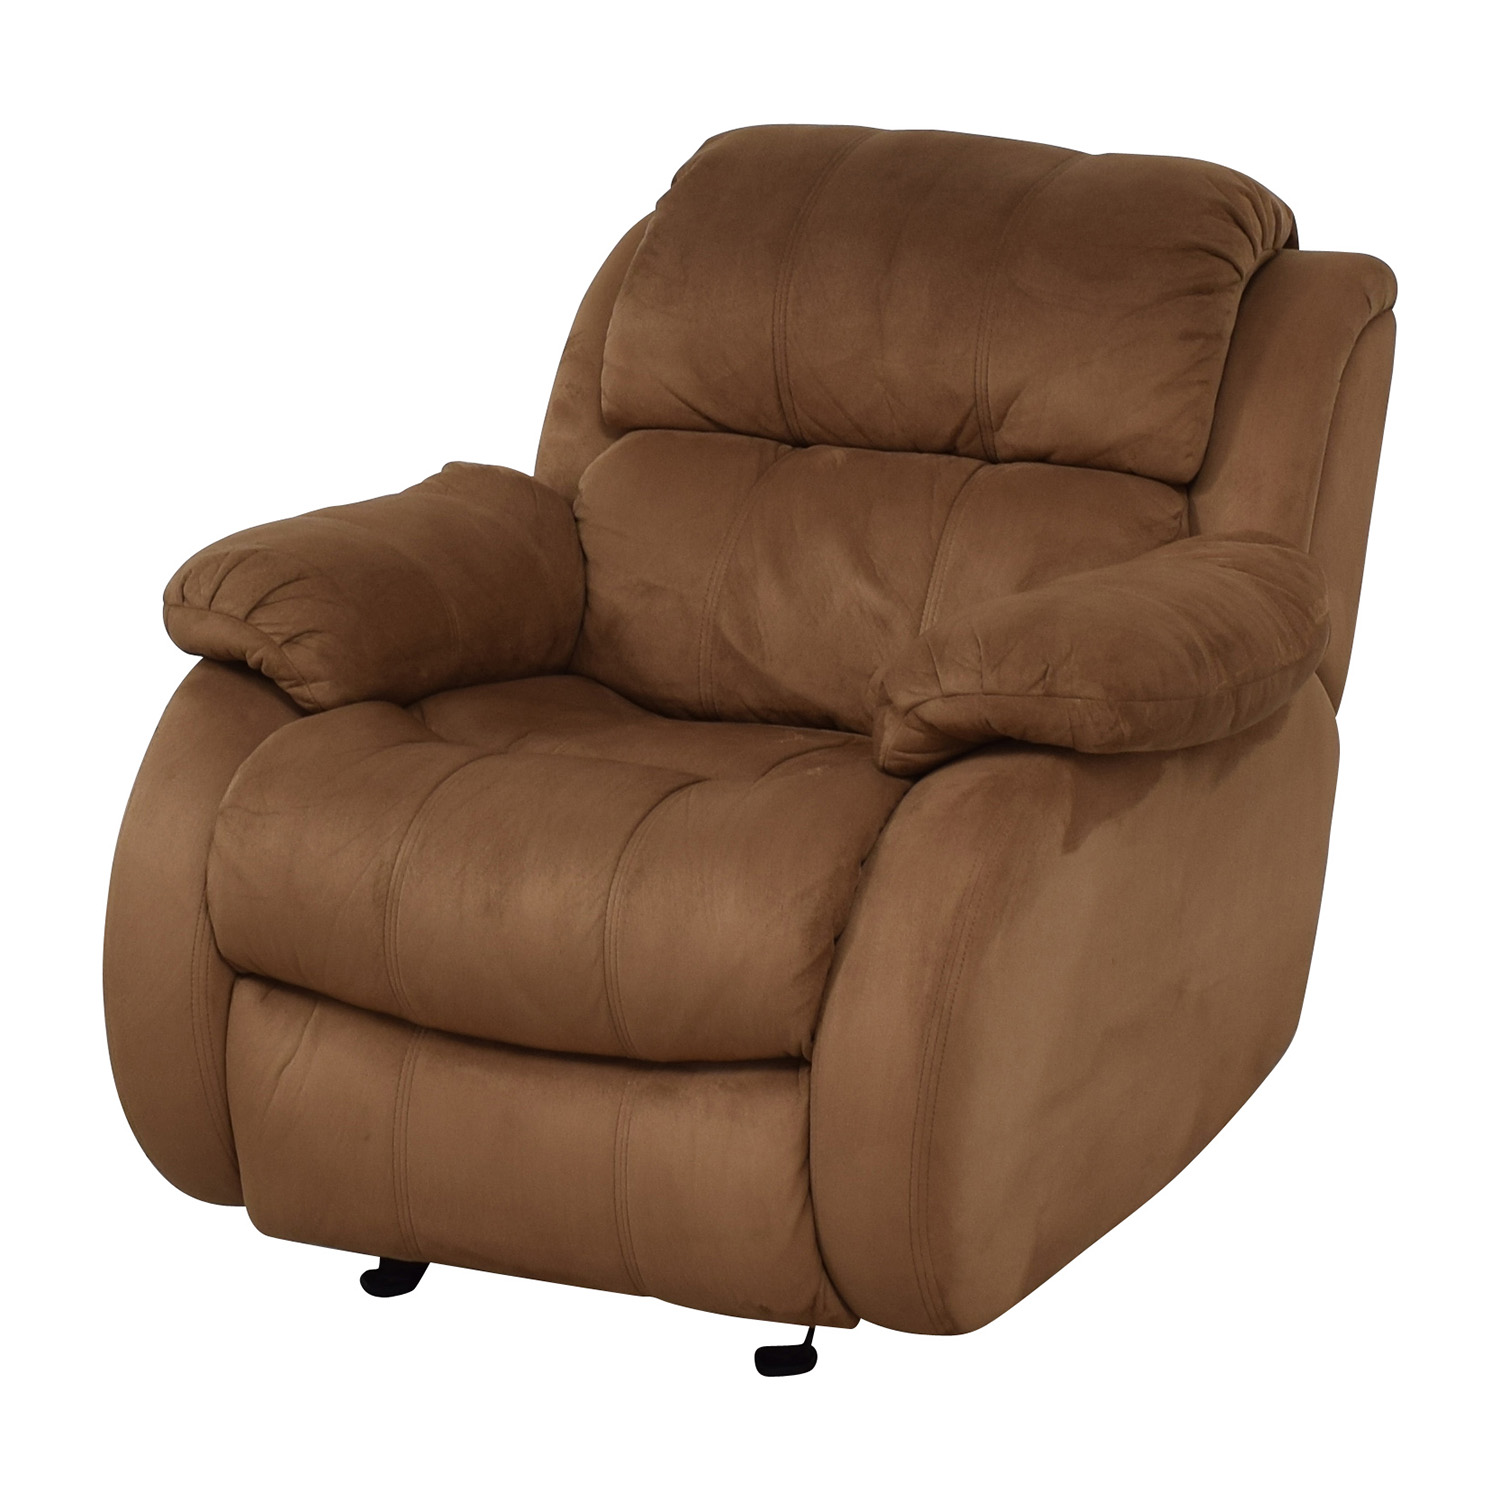 Cheap Furniture Com: Bob's Discount Furniture Bob's Furniture Brown